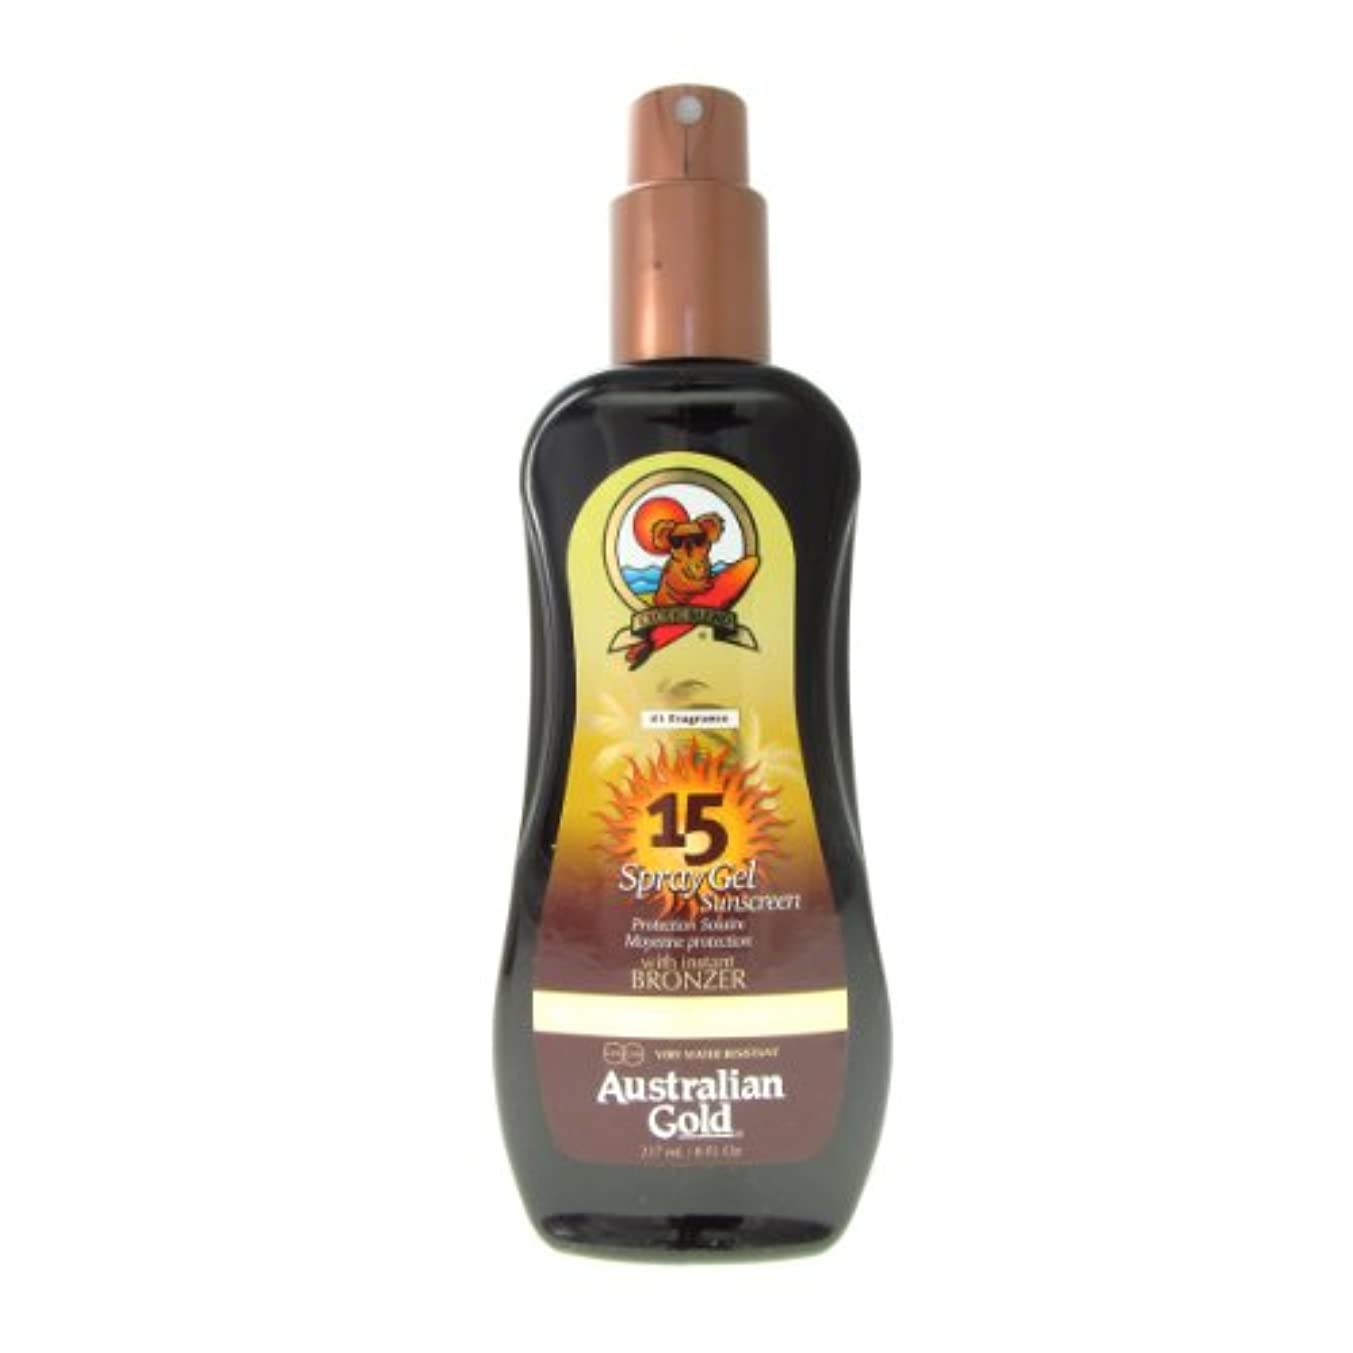 くつろぐ画面電極Australian Gold Spray Gel Spf15 Instant Bronzer 237ml [並行輸入品]